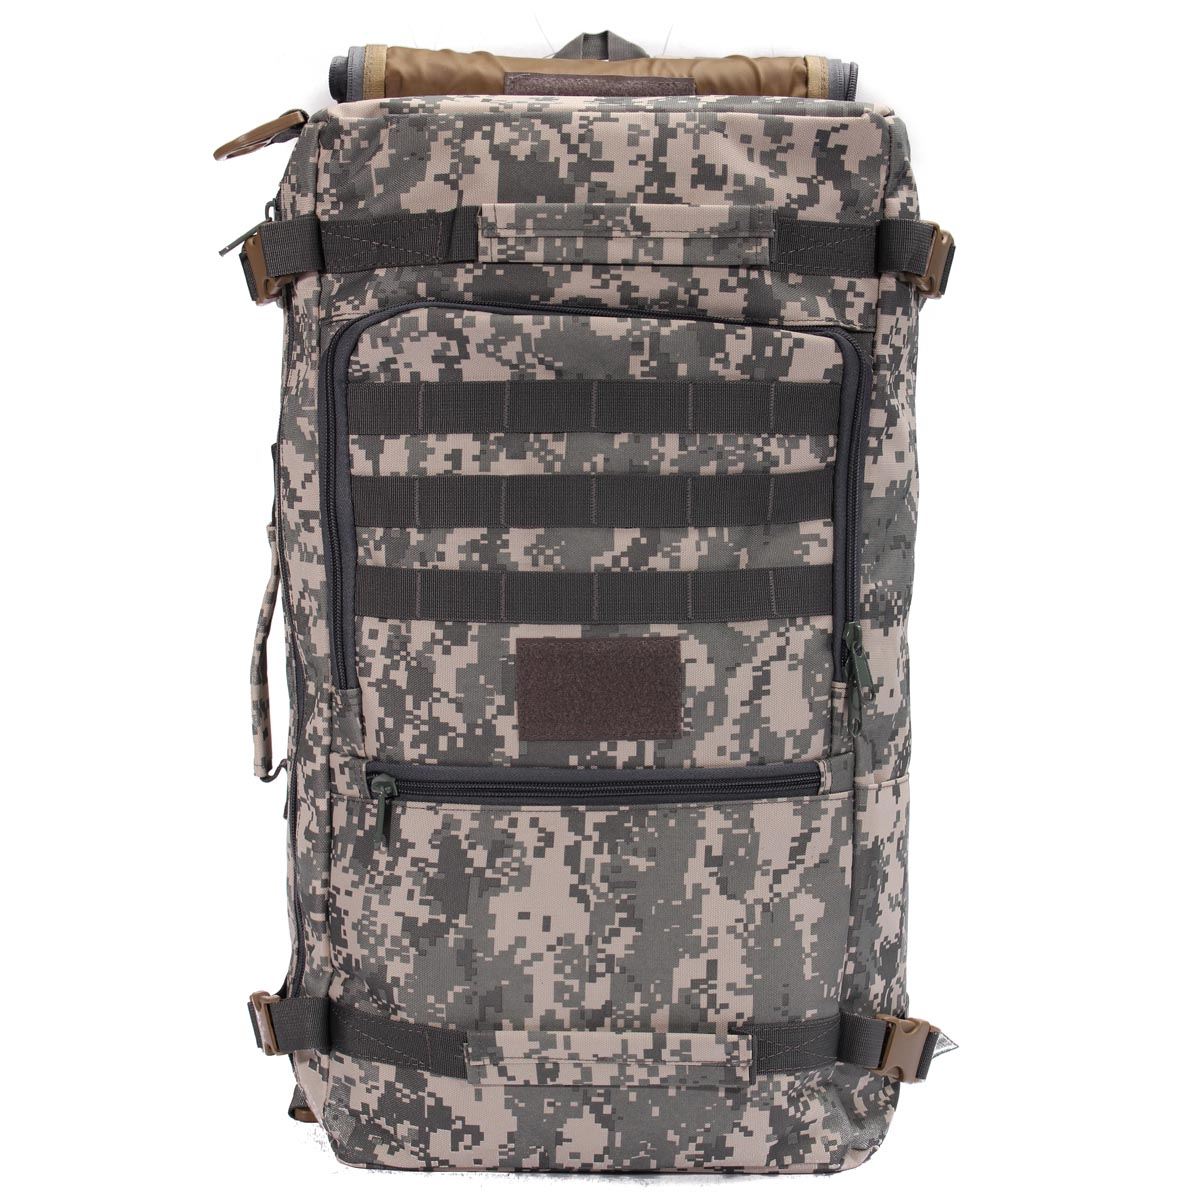 Tactical Military Trekking Backpack Rucksack Shoulder Bag For Camping Hiking